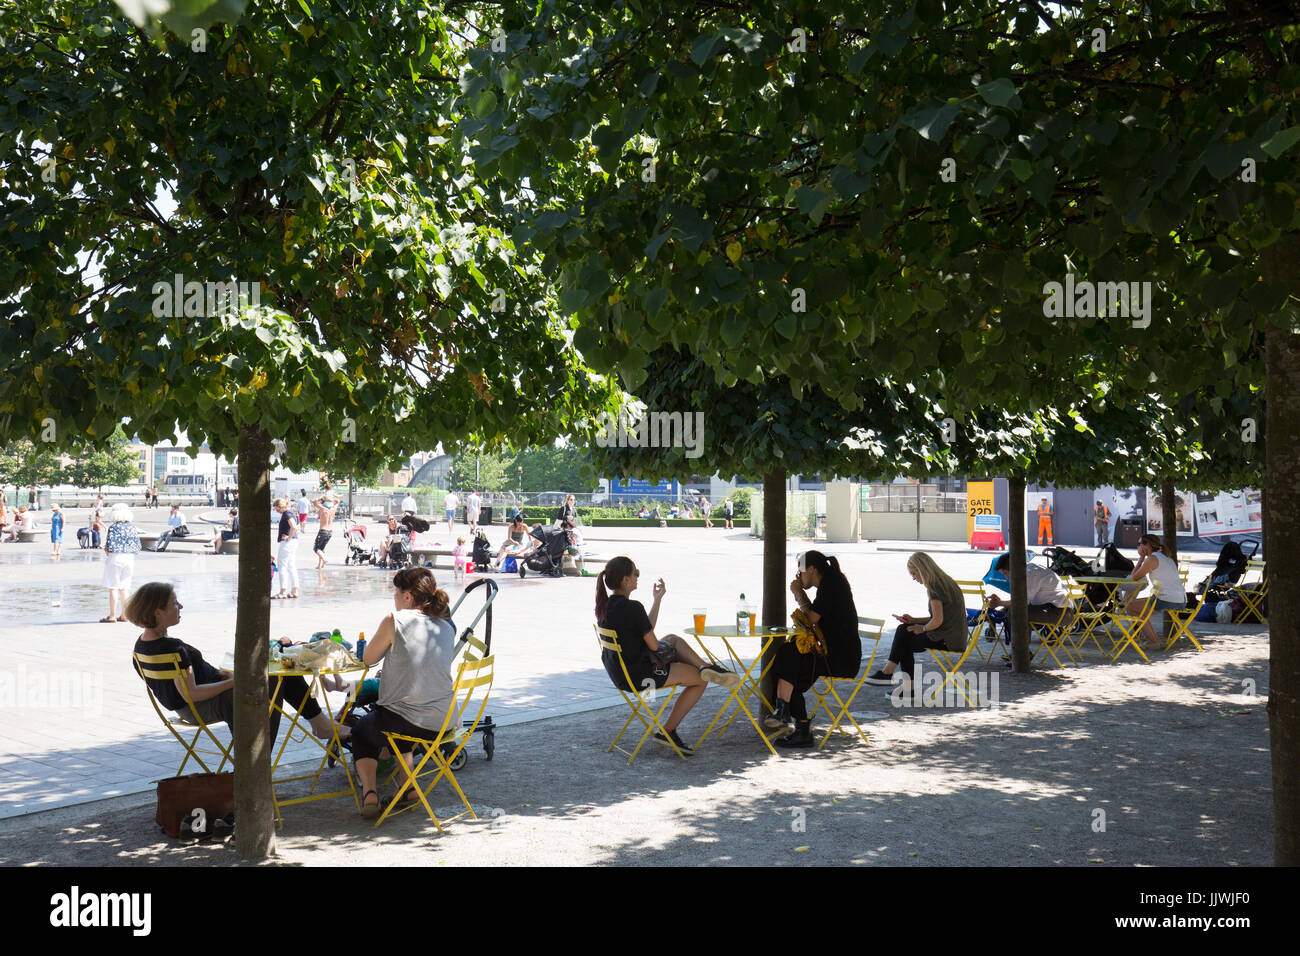 Granary Square, King Cross. Londoners enjoy a shady seating area in summer - Stock Image